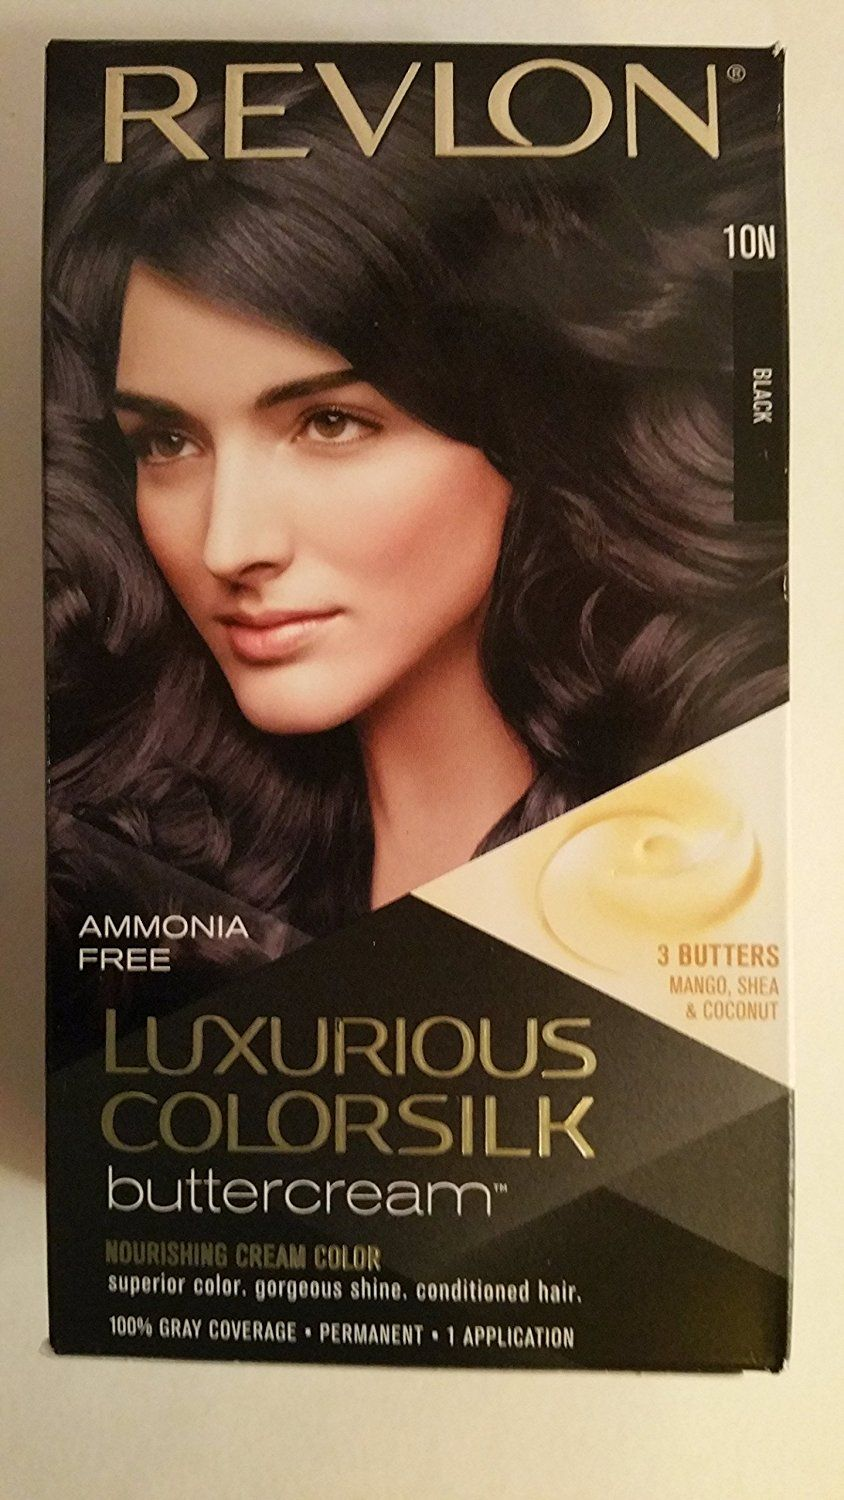 Revlon Luxurious Colorsilk Buttercream Haircolor (10N Black - 3 Pack) >>> This is an Amazon Affiliate link. Want additional info? Click on the image.